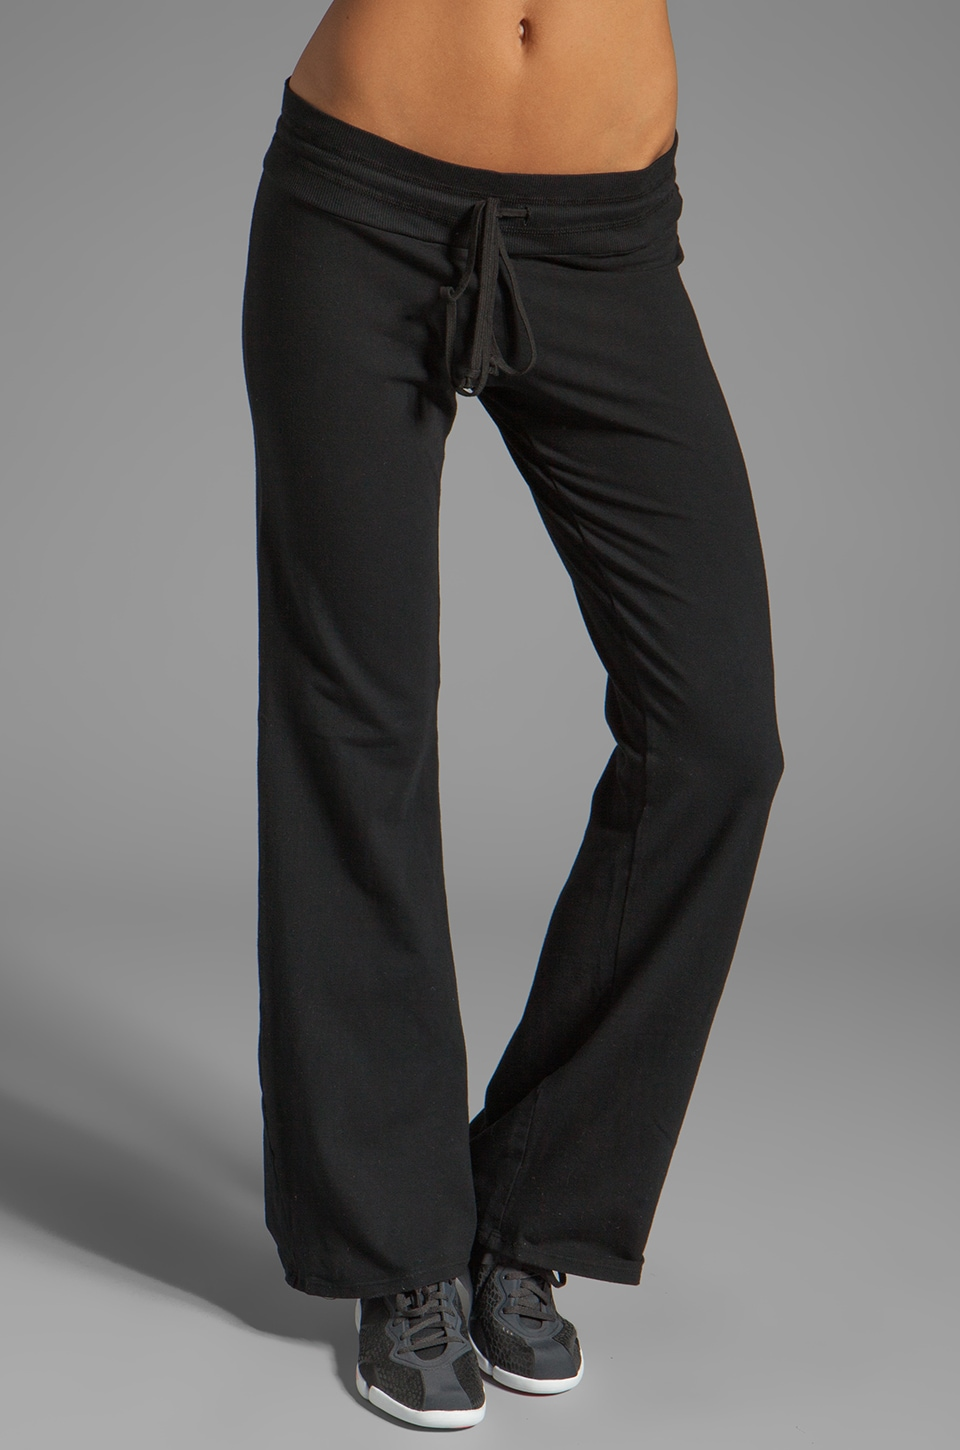 SOLOW Basic Drawstring Wide Leg Pant in Black